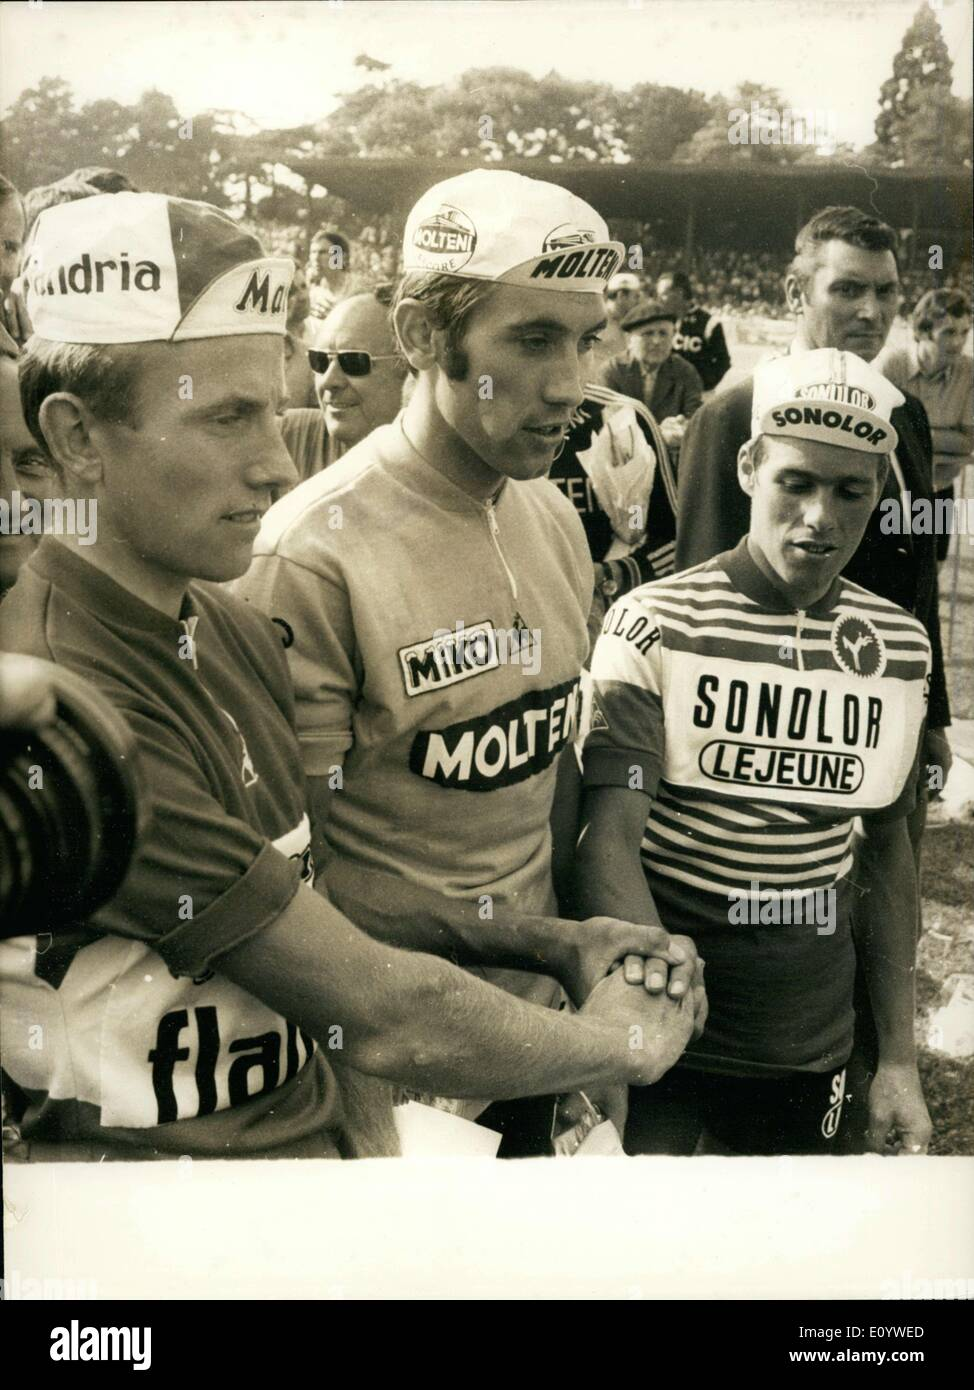 Jul. 19, 1971 - Eddy Merckx's Tour de France race finished with a new record performance that would win the last leg of the race to Versailles. Pictured here is Holland's Zoetemelk (left), 2nd place; Eddy Merckx, 1st place; and Belgium's Lucien van Impe, 3rd place. - Stock Image